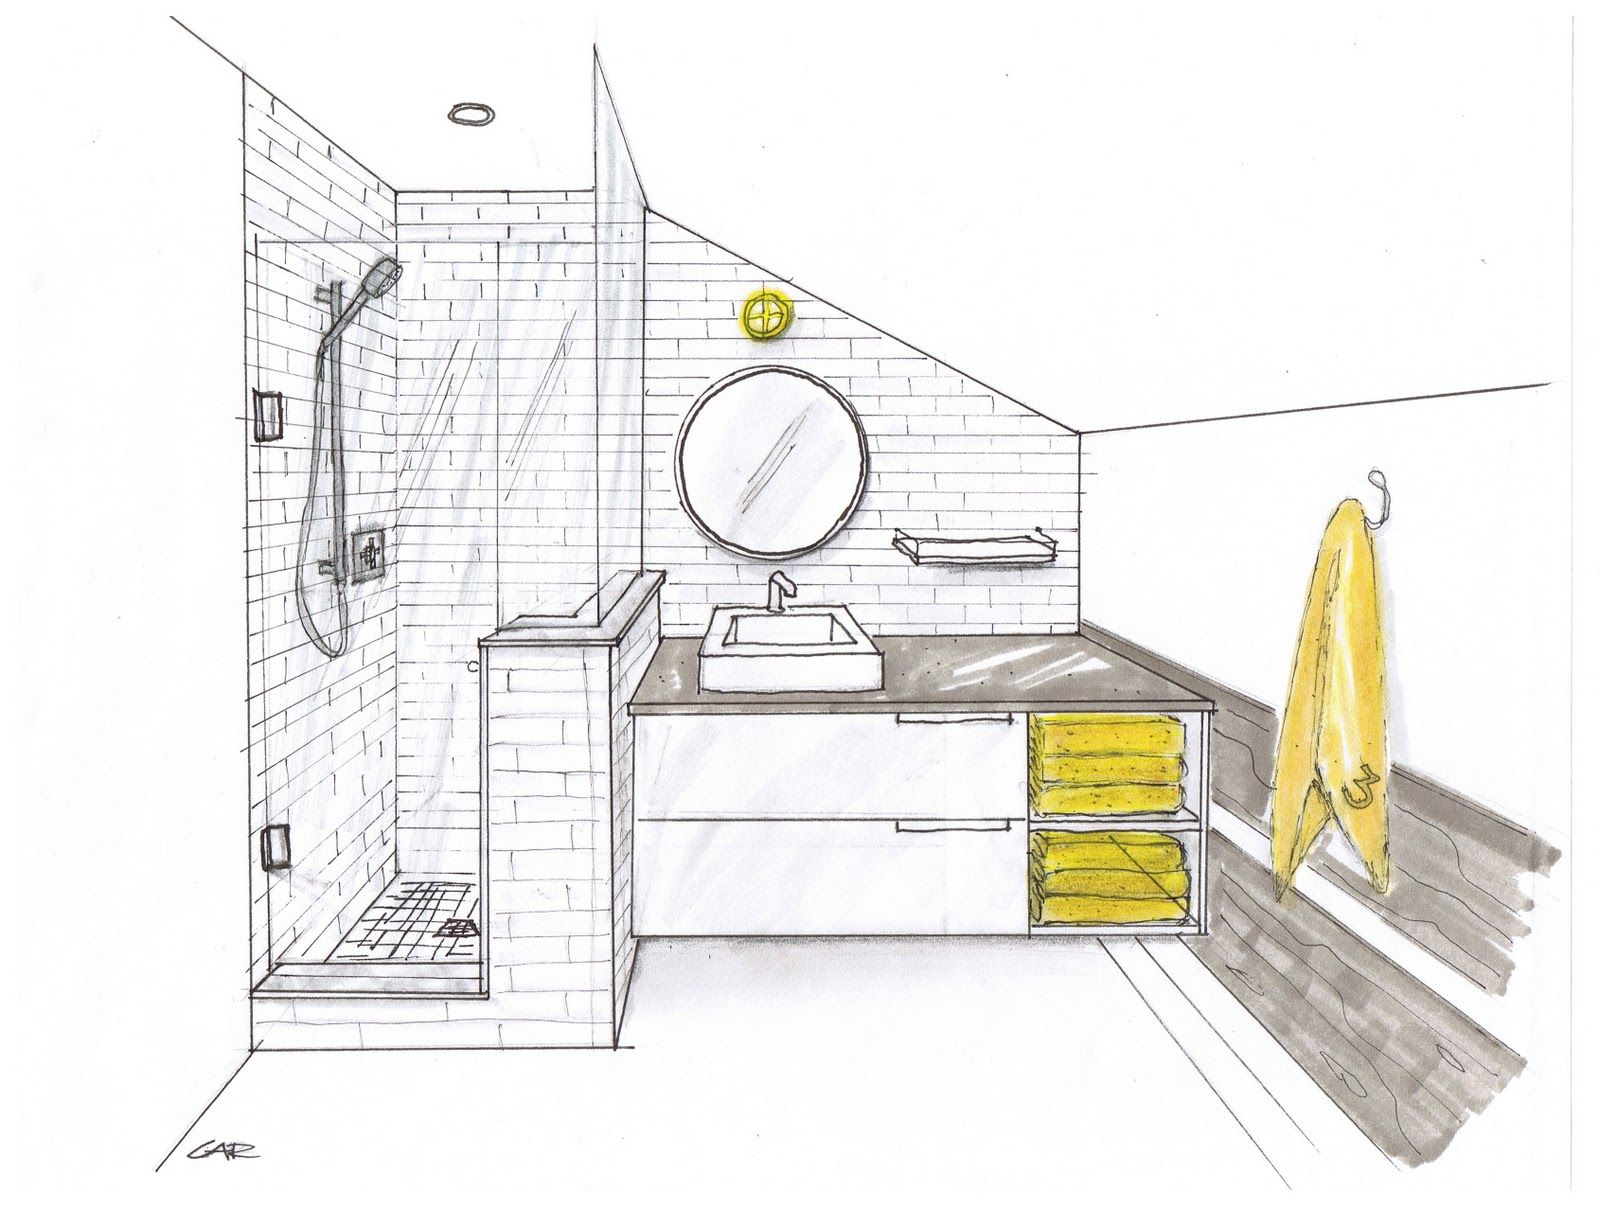 Bathroom drawings design - Bathroom Designs Stylish Bathroom Sketch Design Featuring Corner Glass Bathroom Vanities Towel Racks Ideas Using With Bathroom Planner Tool